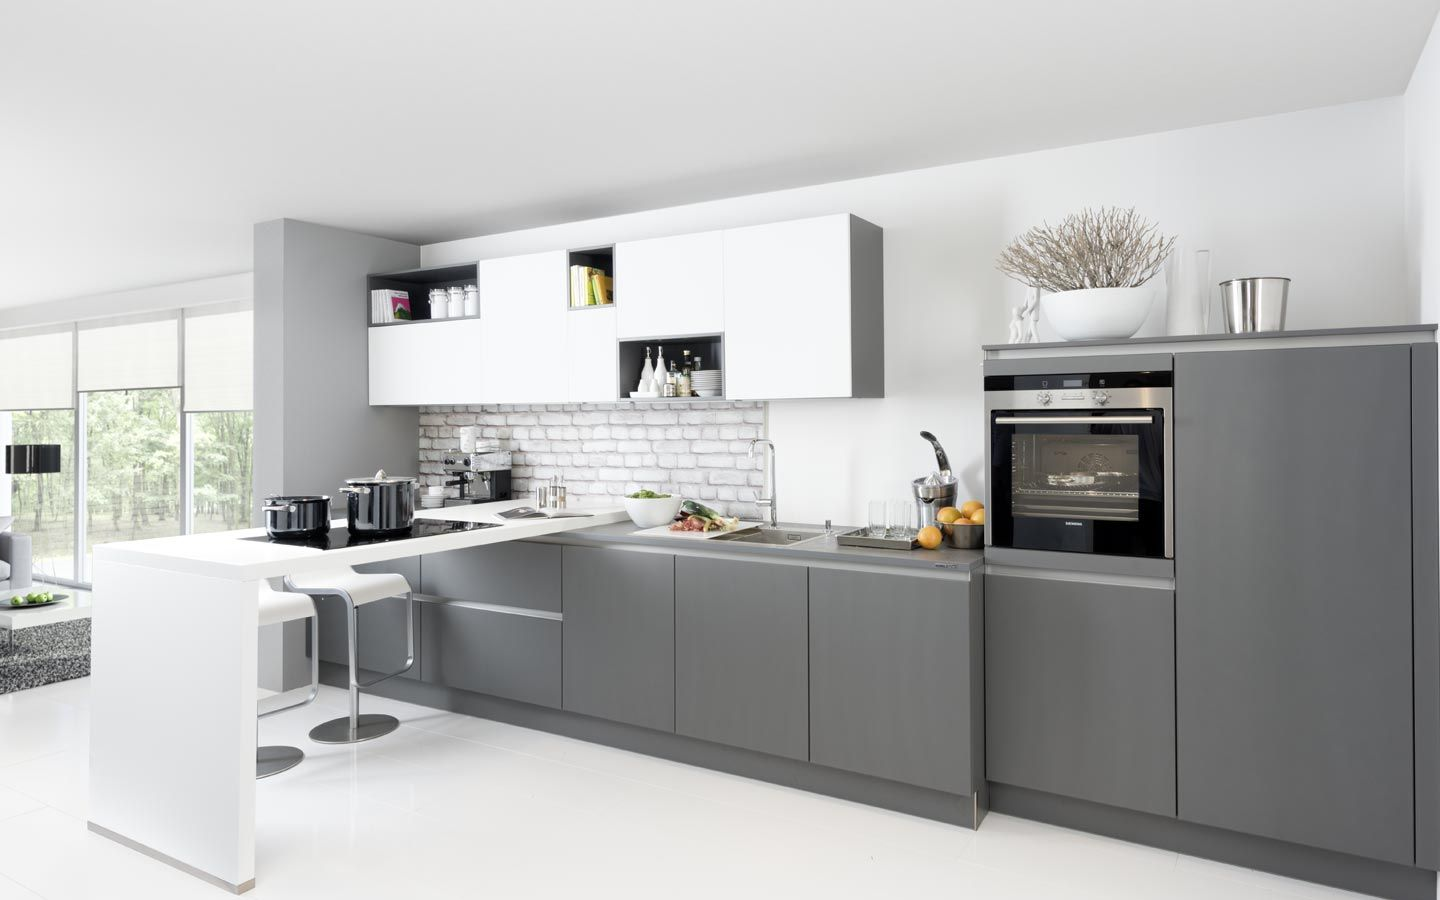 Nolte Kitchens U2013 Design Your Dream Kitchen!